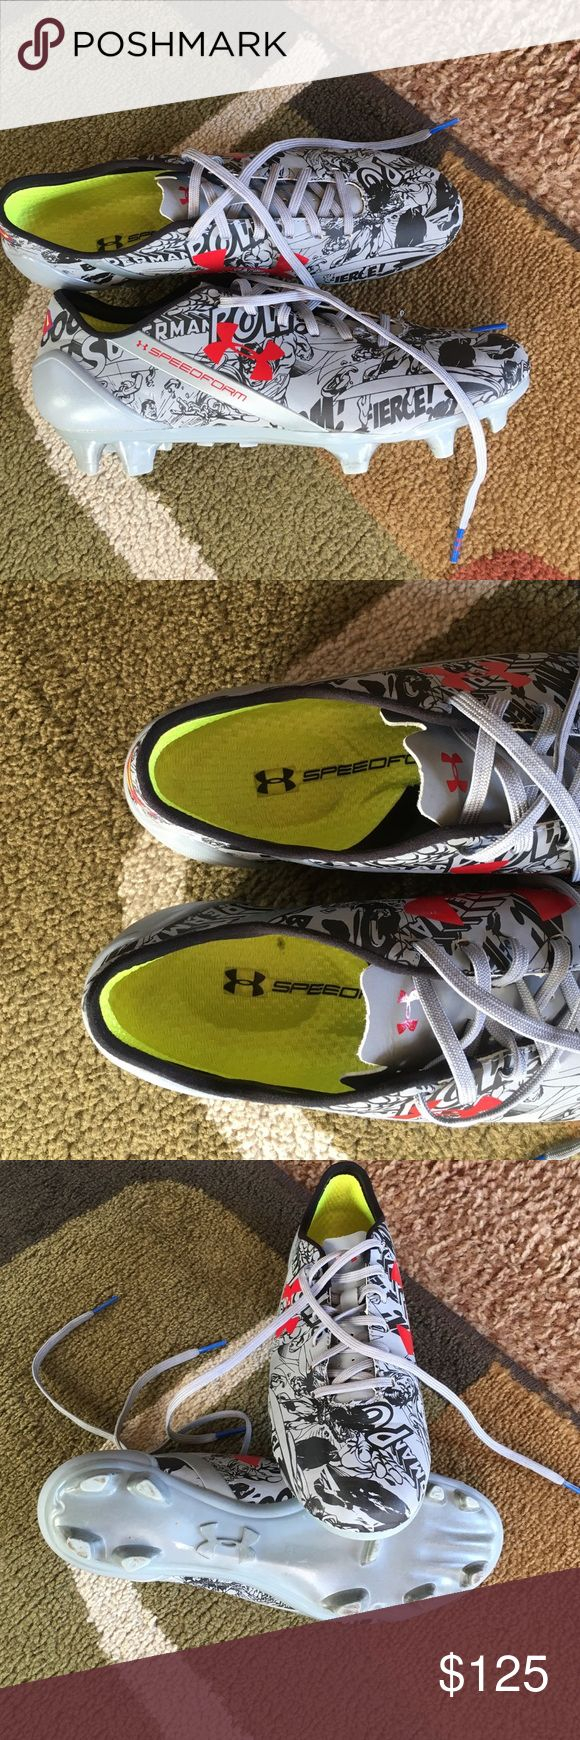 """Under Armour speedform Superman cleats Man made upperthis pair is unique the right """"S"""" is backwards see pic 2 Under Armour Shoes Athletic Shoes"""